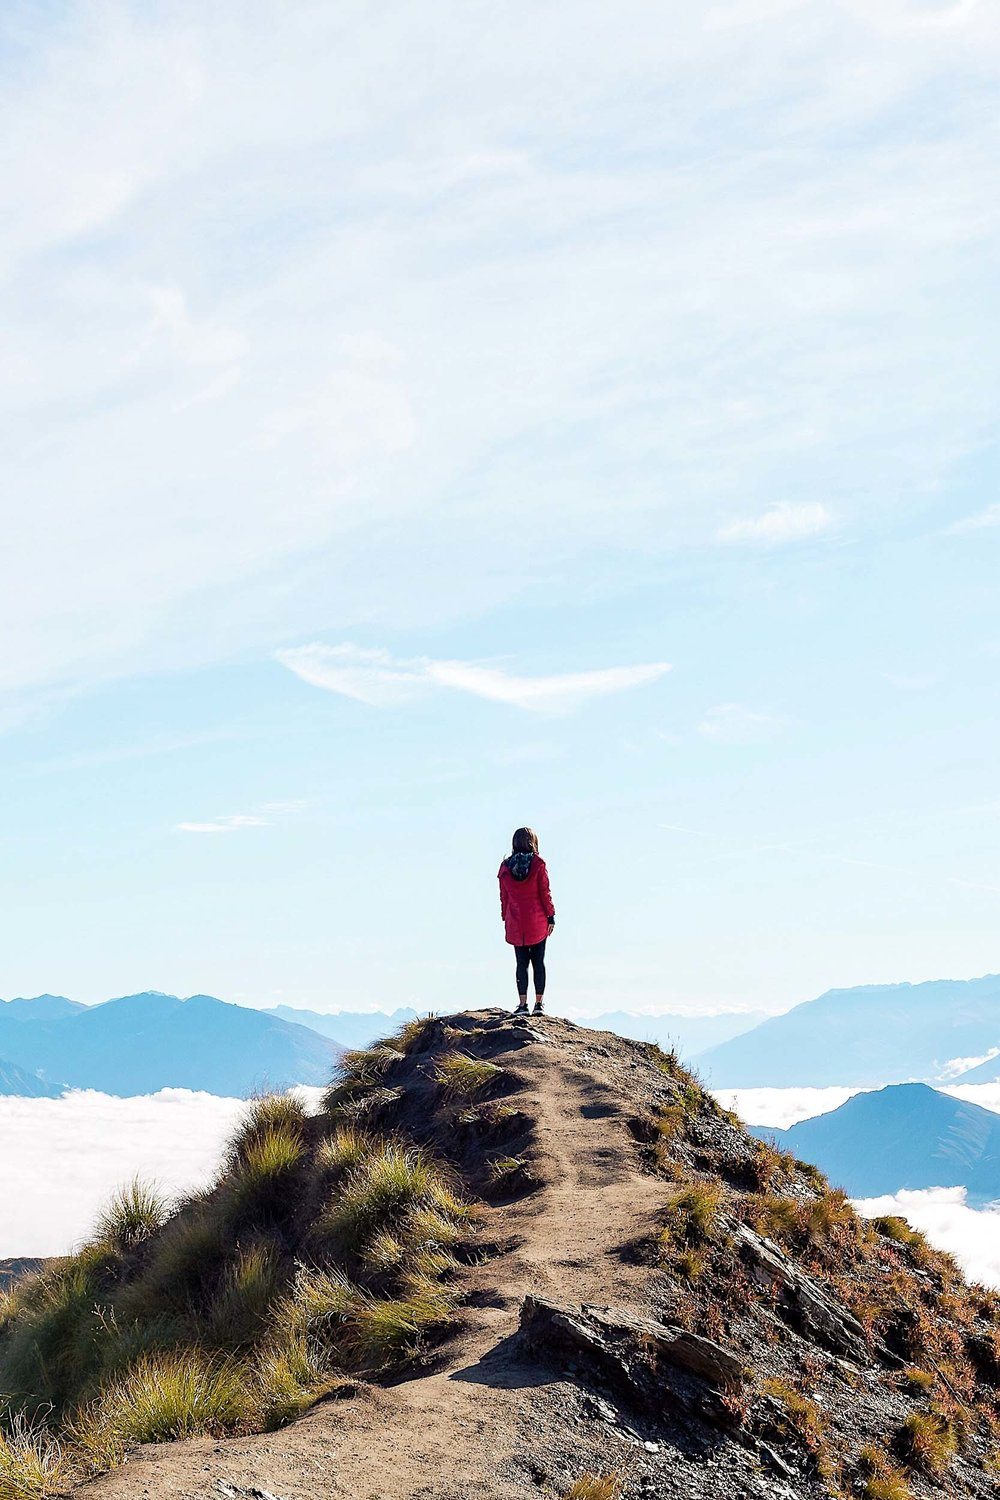 Roys Peak hike is worth the long journey for this amazing view